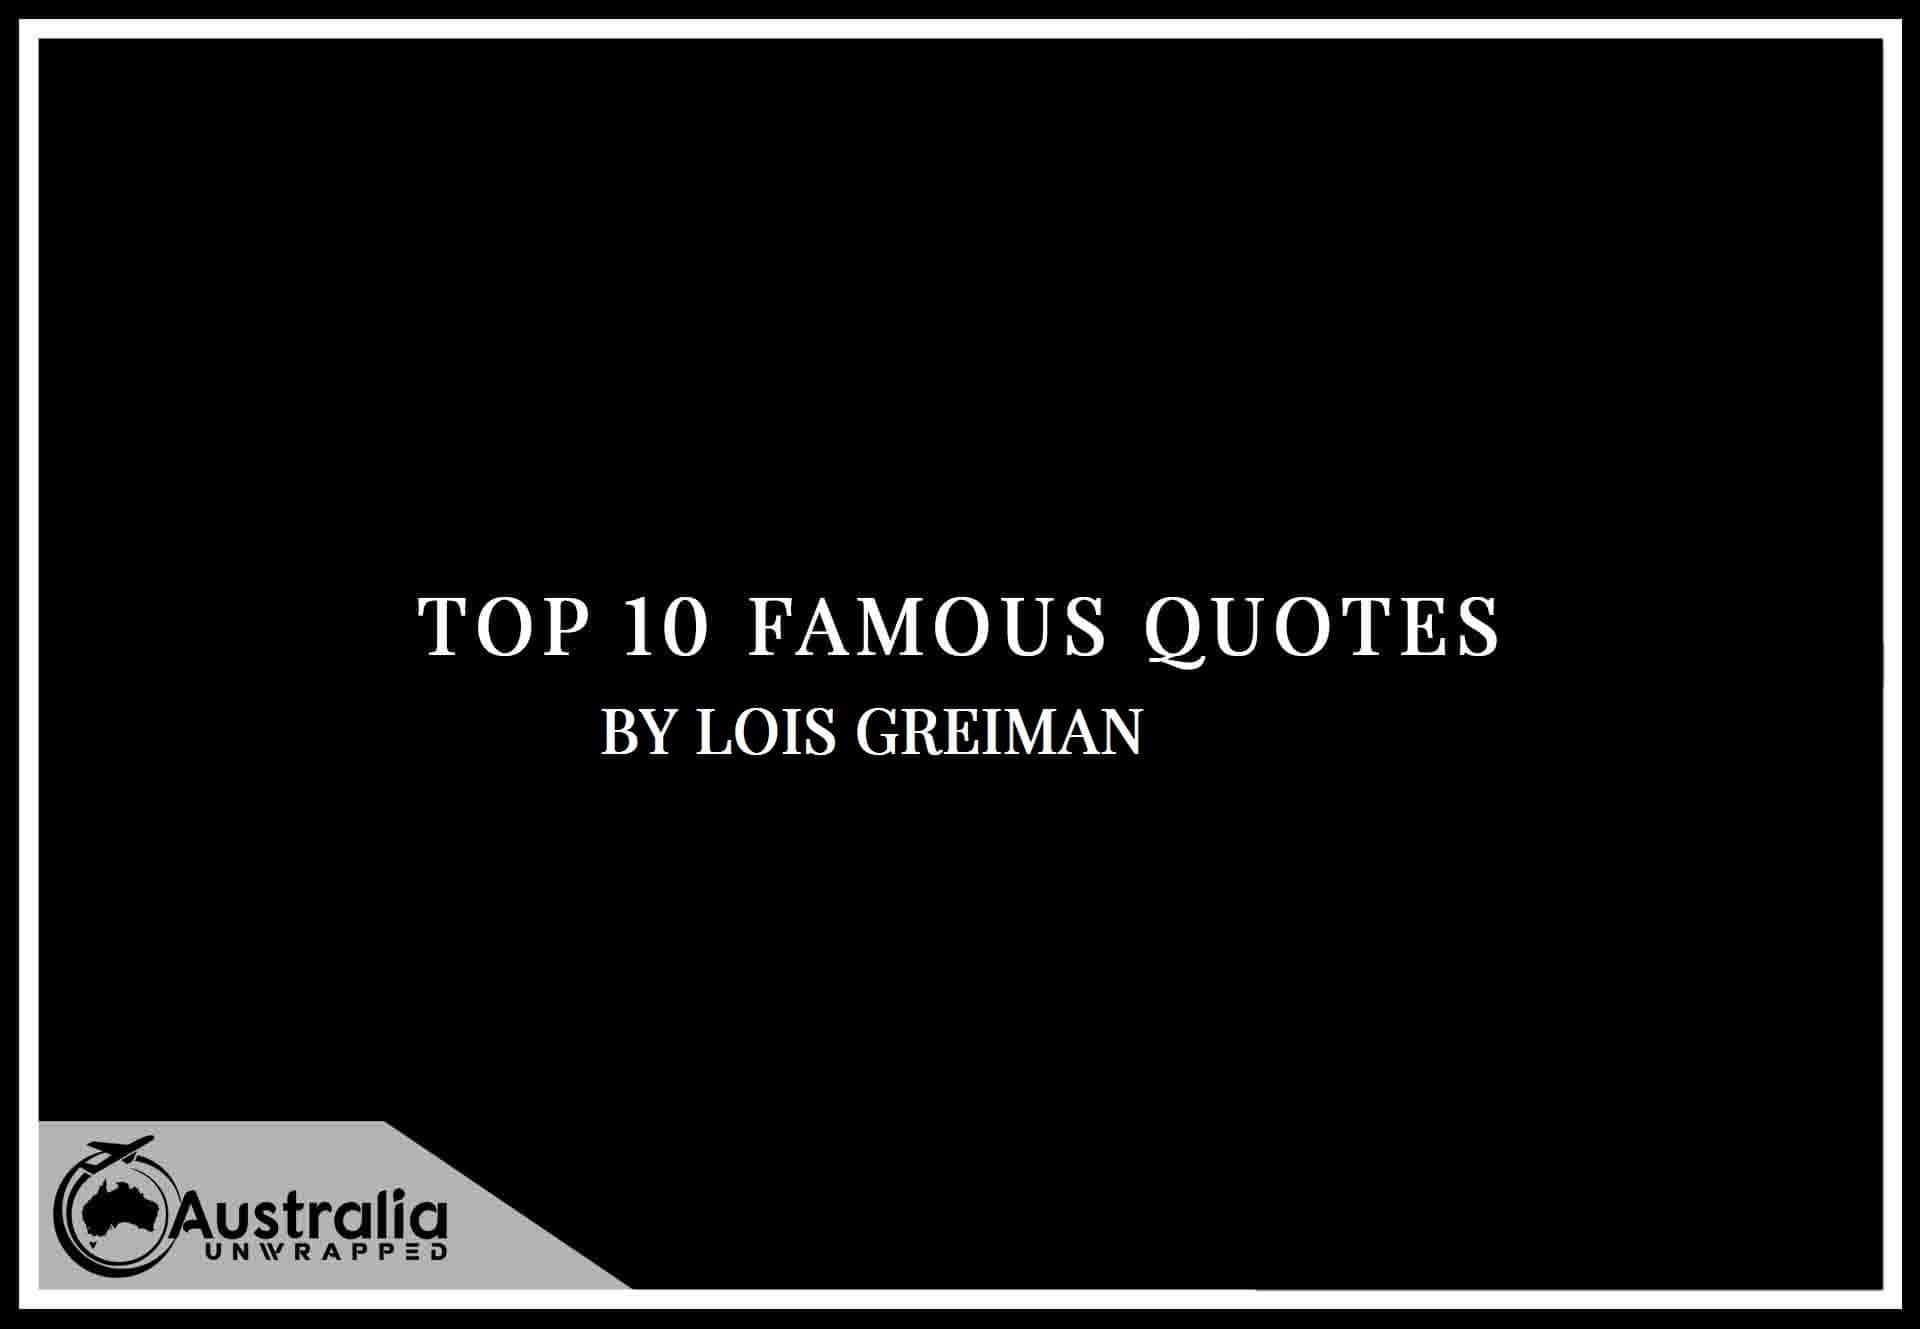 Lois Greiman's Top 10 Popular and Famous Quotes